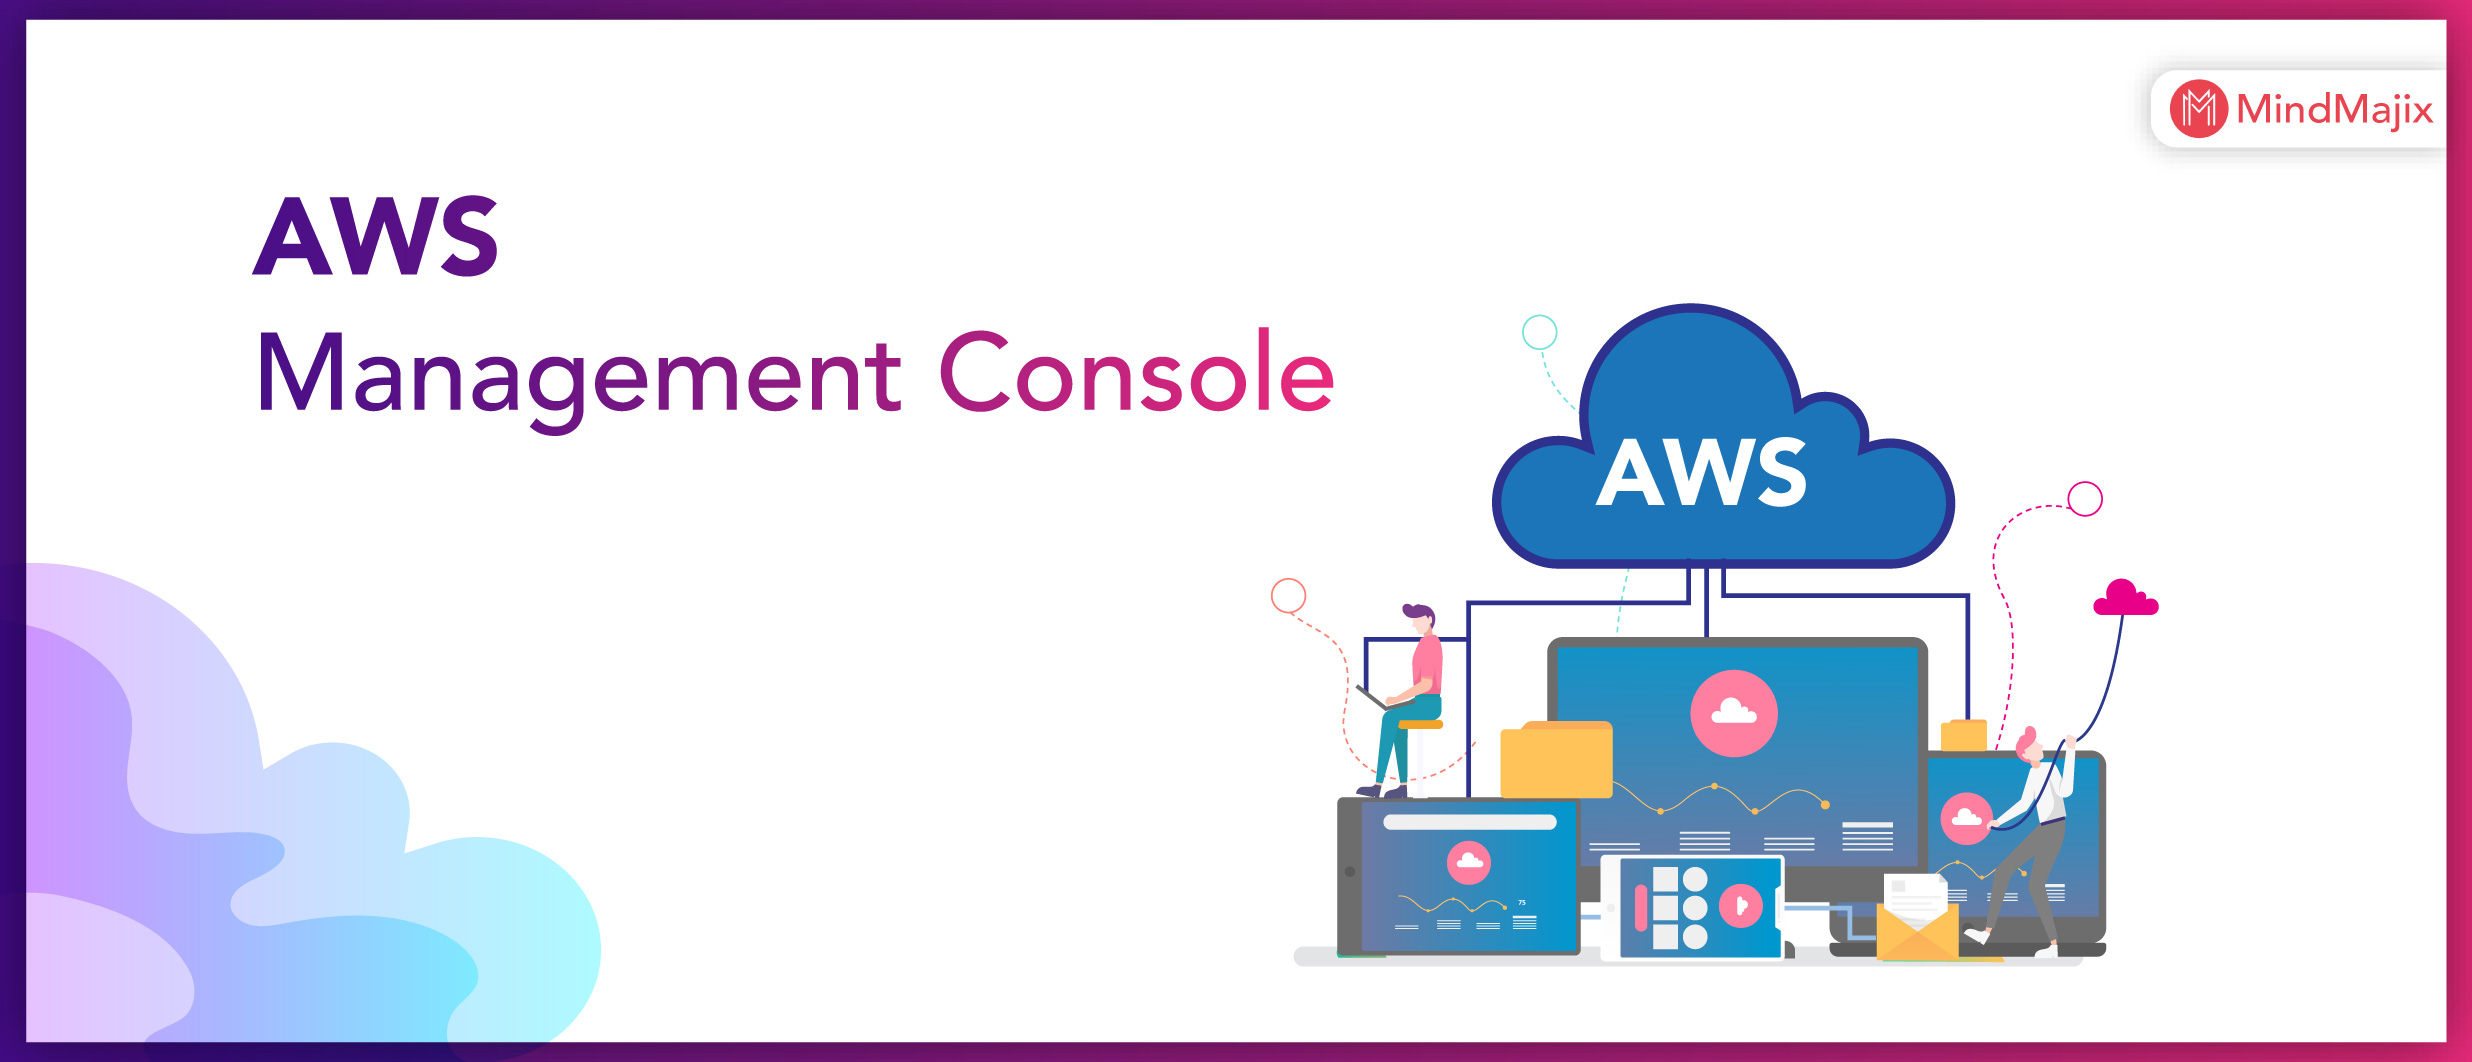 What Is AWS Management Console?